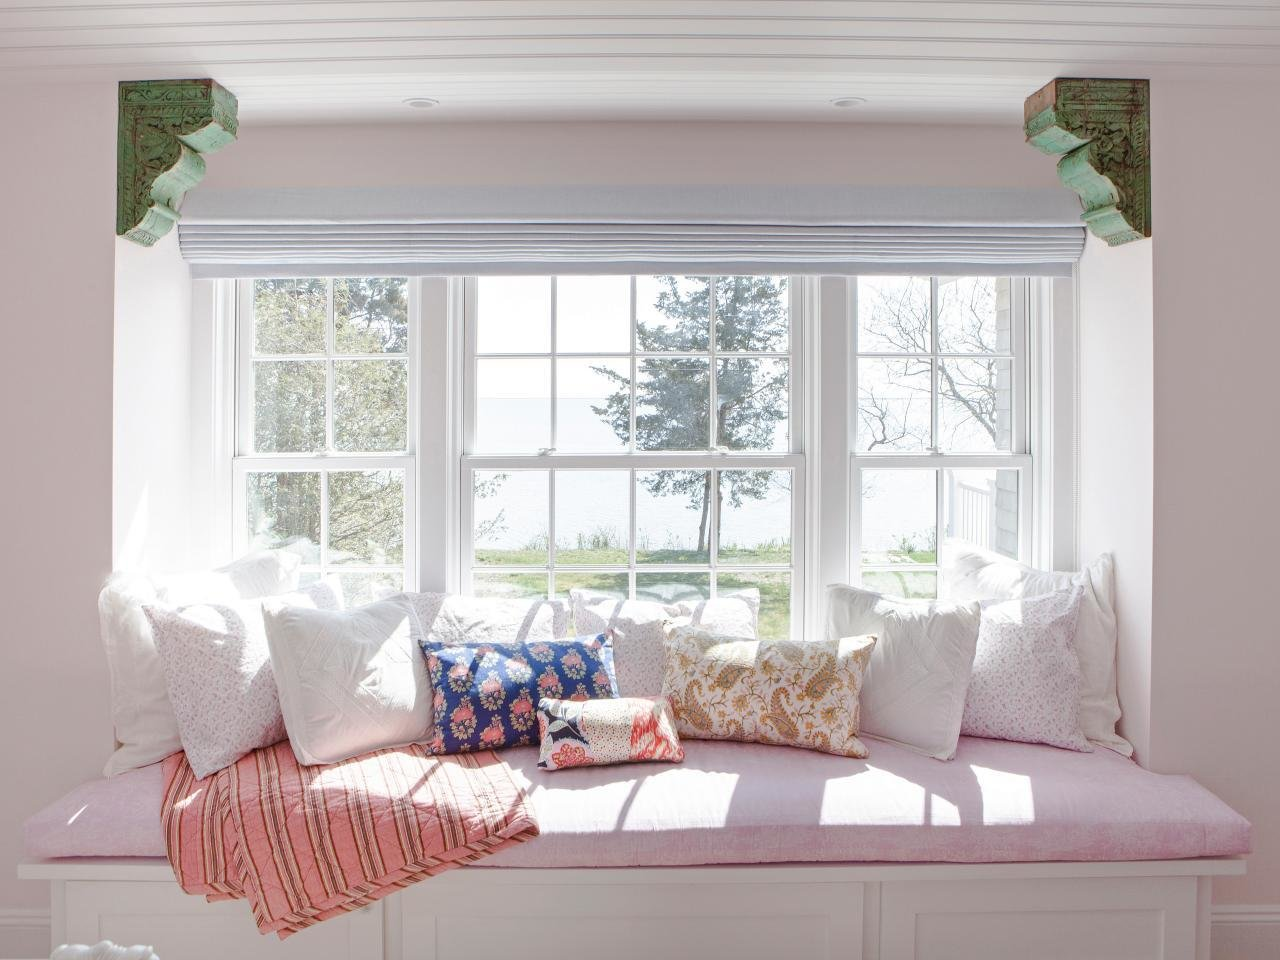 Best Spacious Window Seat With Stylish Patterned Pillows Hgtv With Pictures